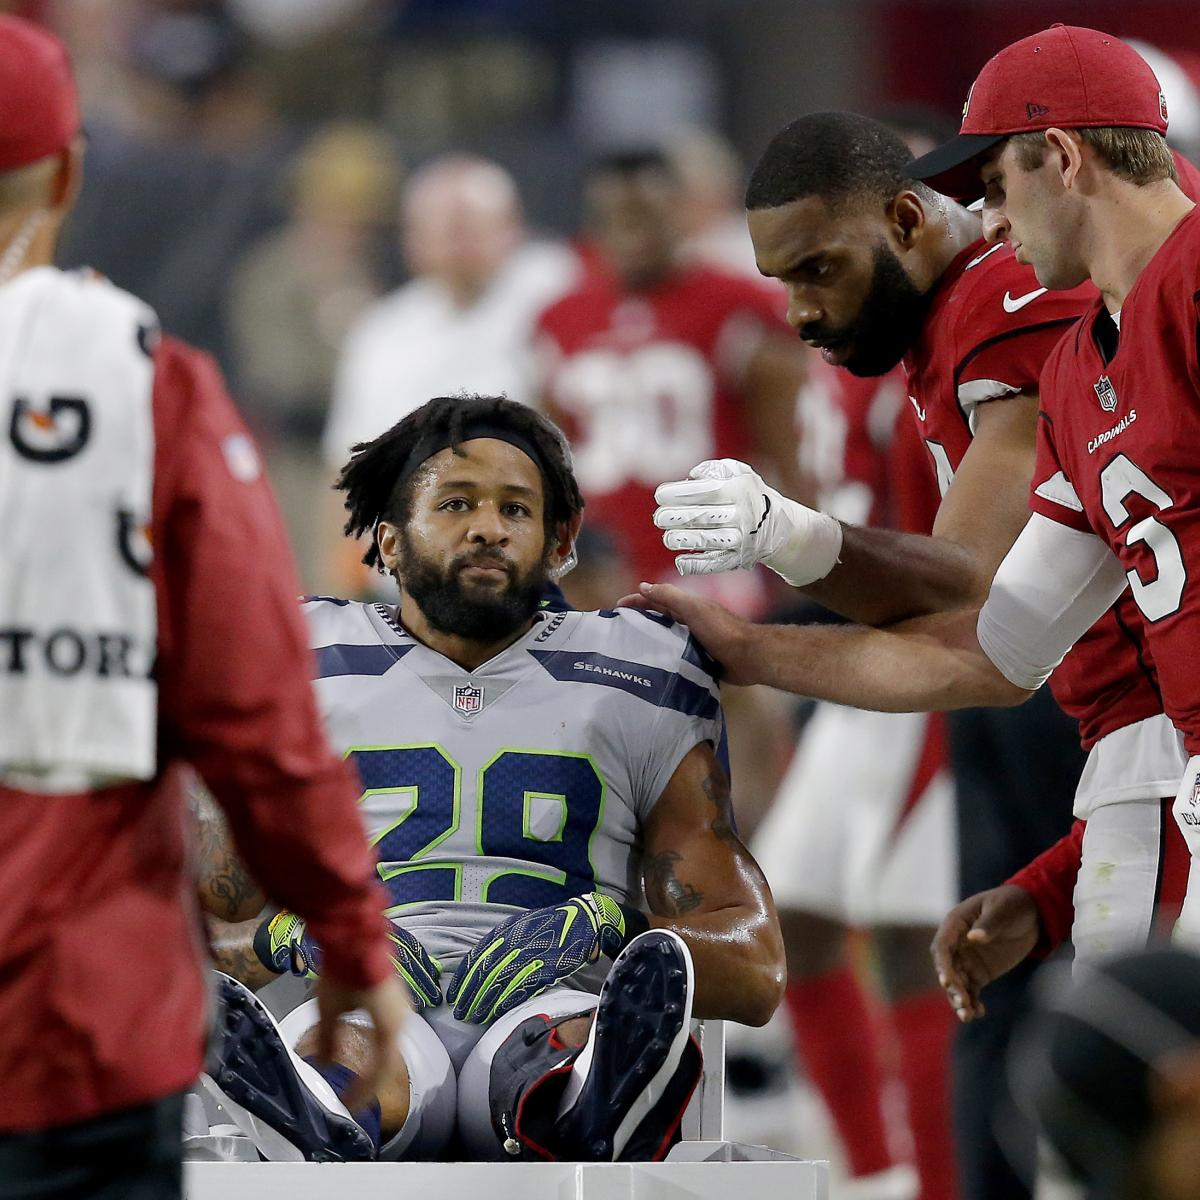 Earl Thomas Placed on IR After Leg Injury Diagnosed as Break